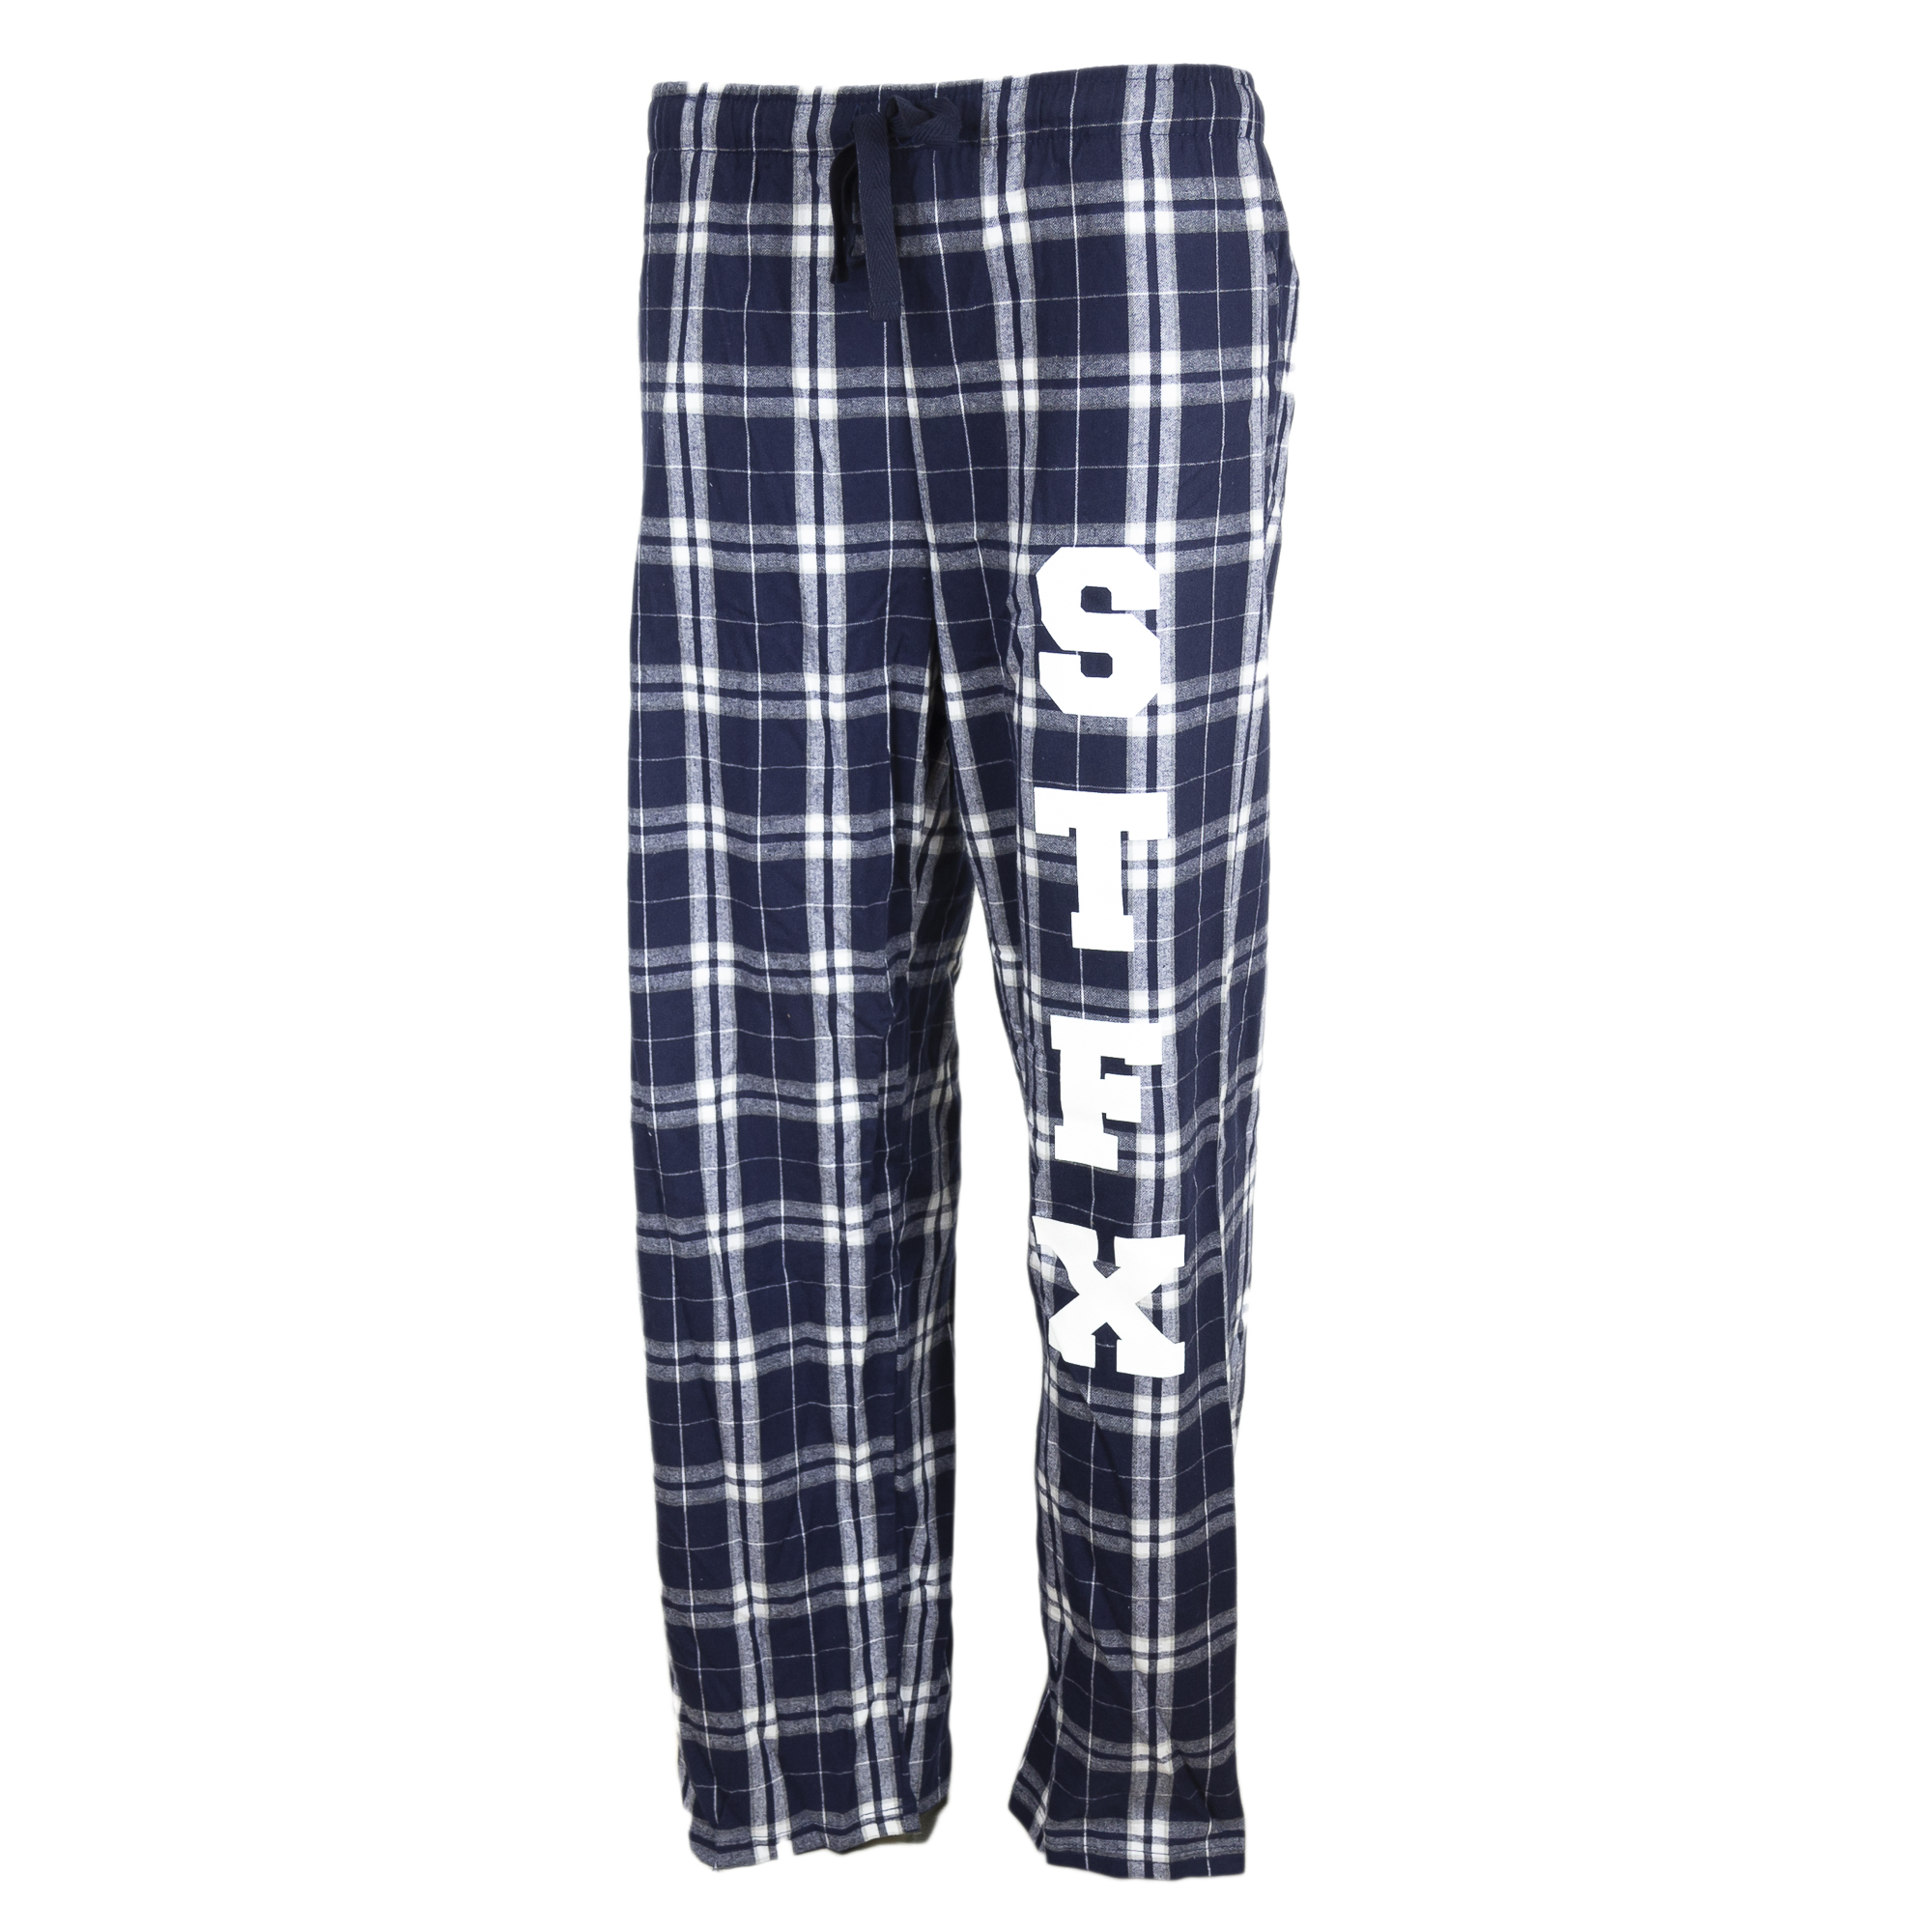 Home Pants STFX flannel pyjamas. 🔍 dabda969b